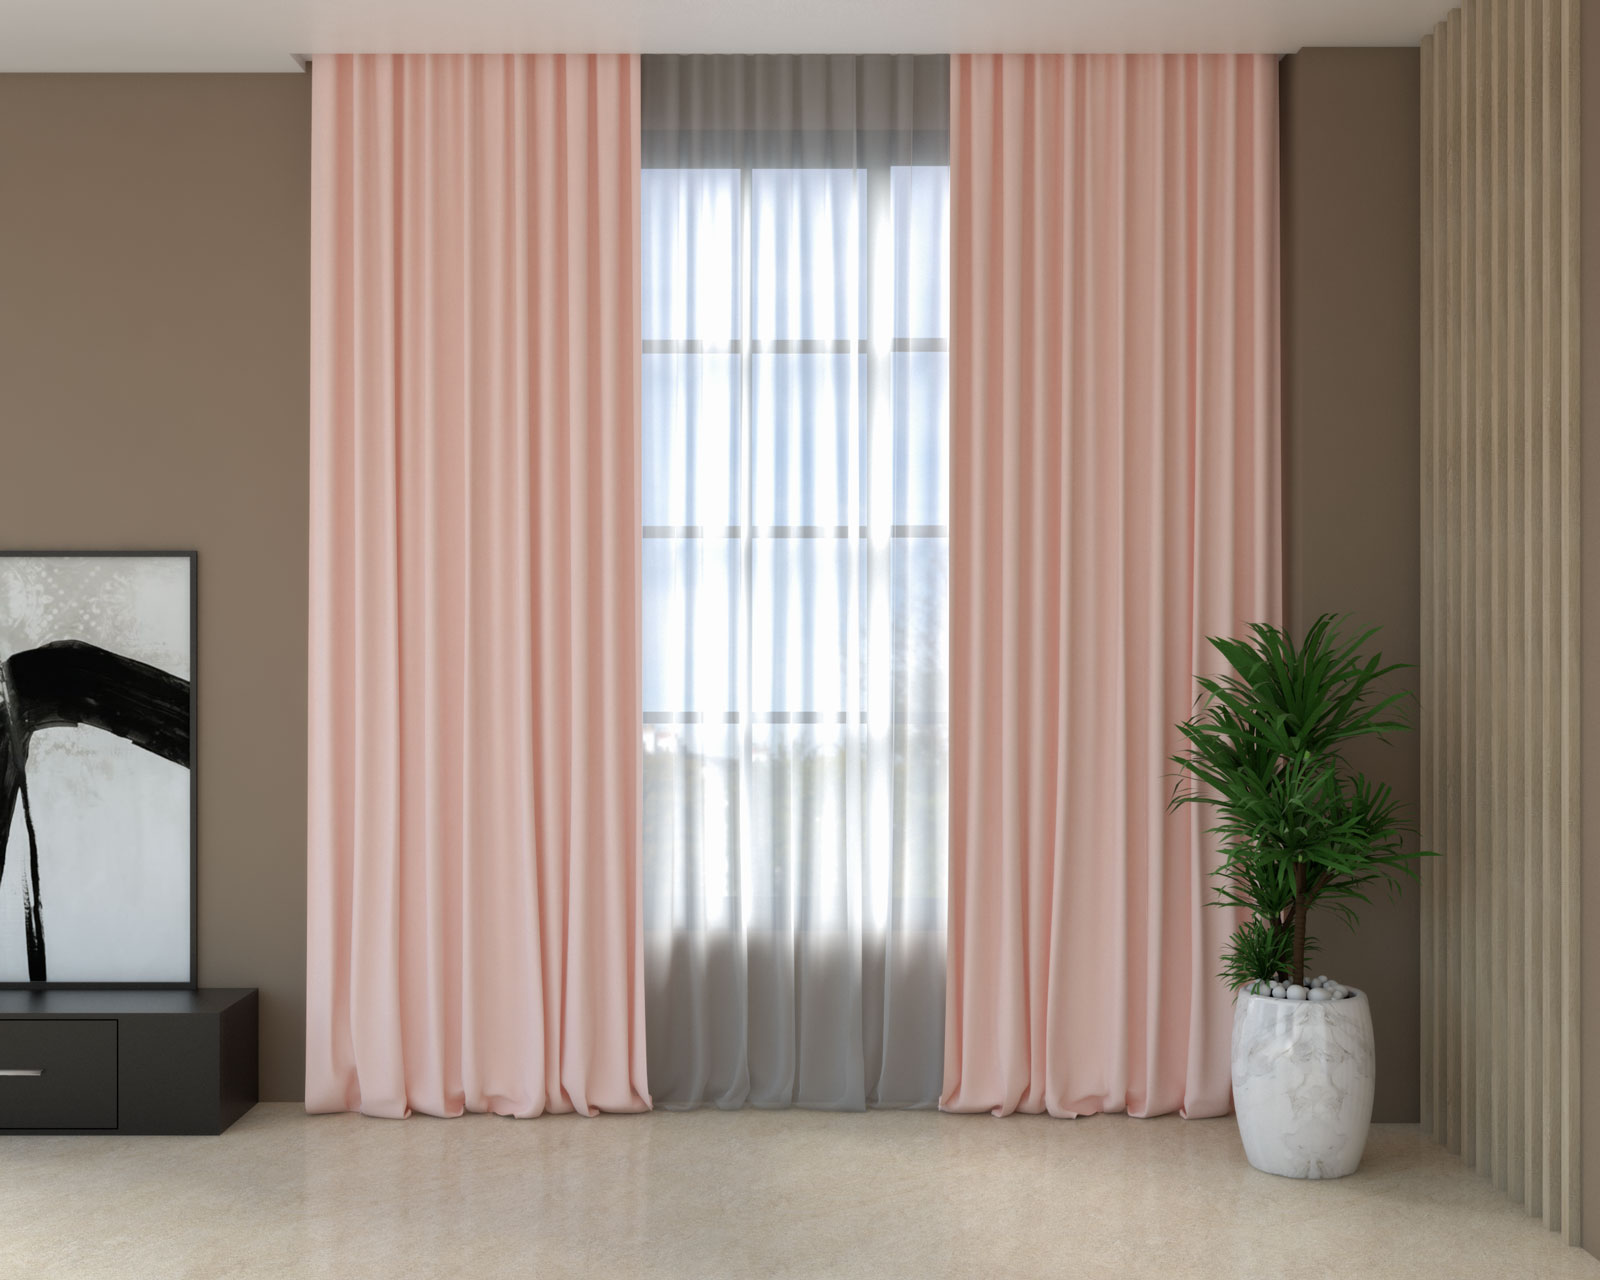 Rose quartz curtains with brown walls